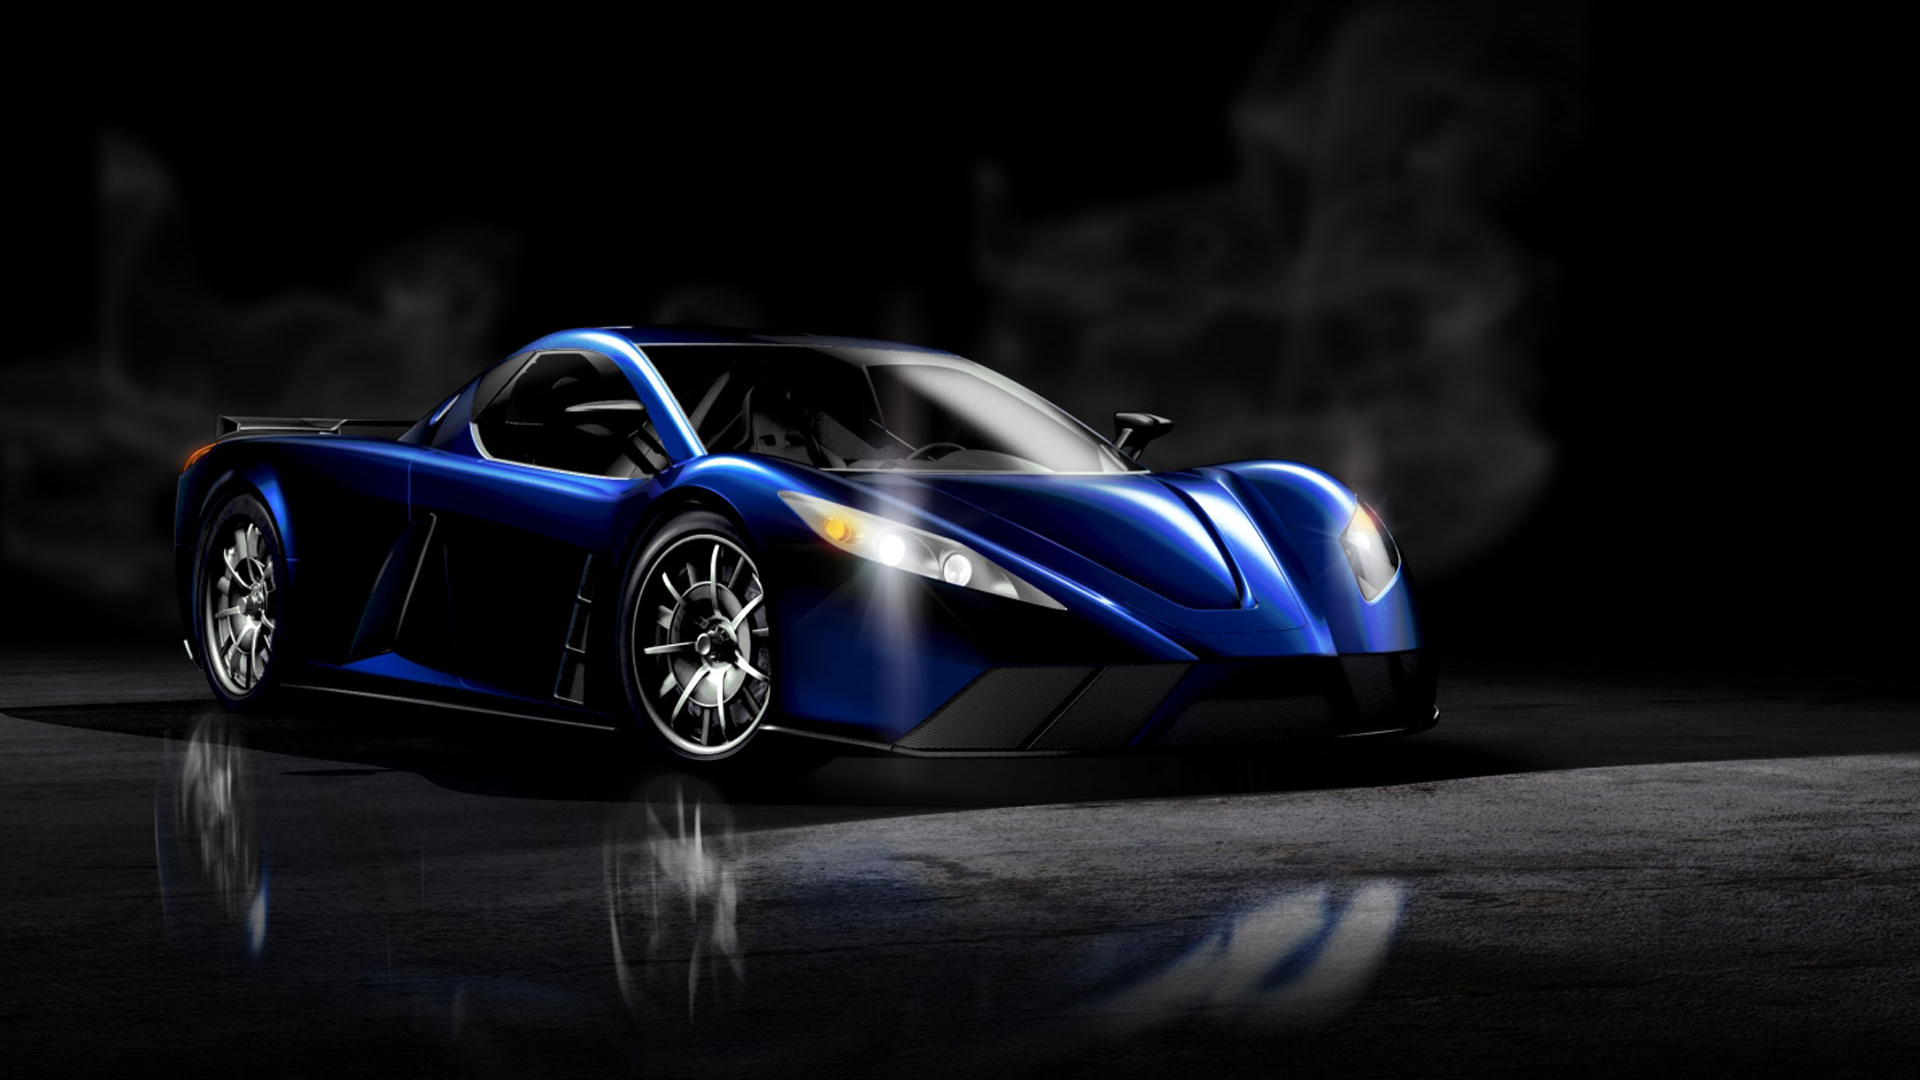 kepler motion wallpaper | hd car wallpapers | id #3105